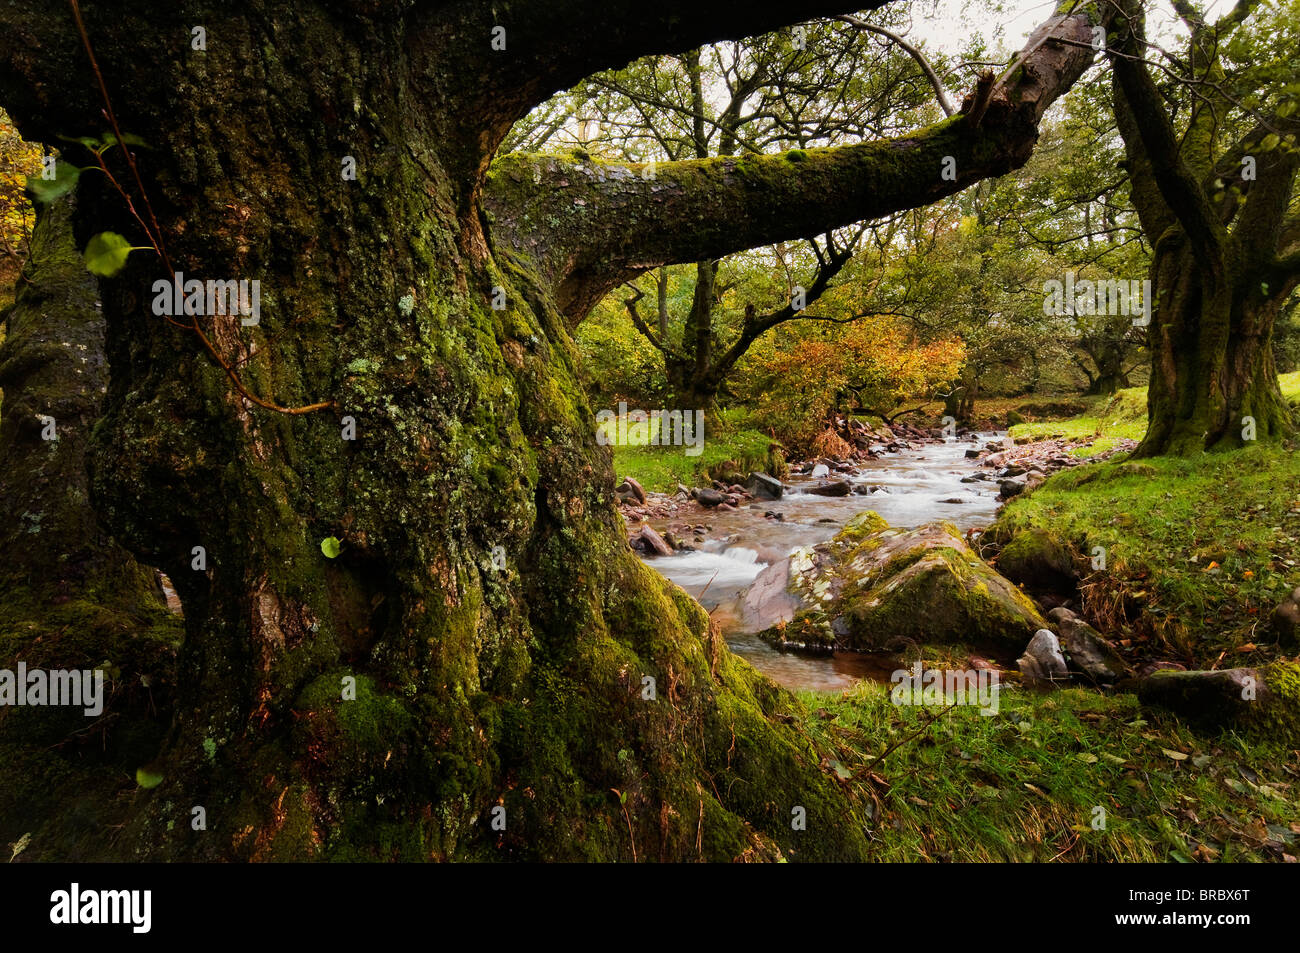 Ancient woodland by a mountain stream on Pen y Fan in the Brecon Beacons National Park - Stock Image